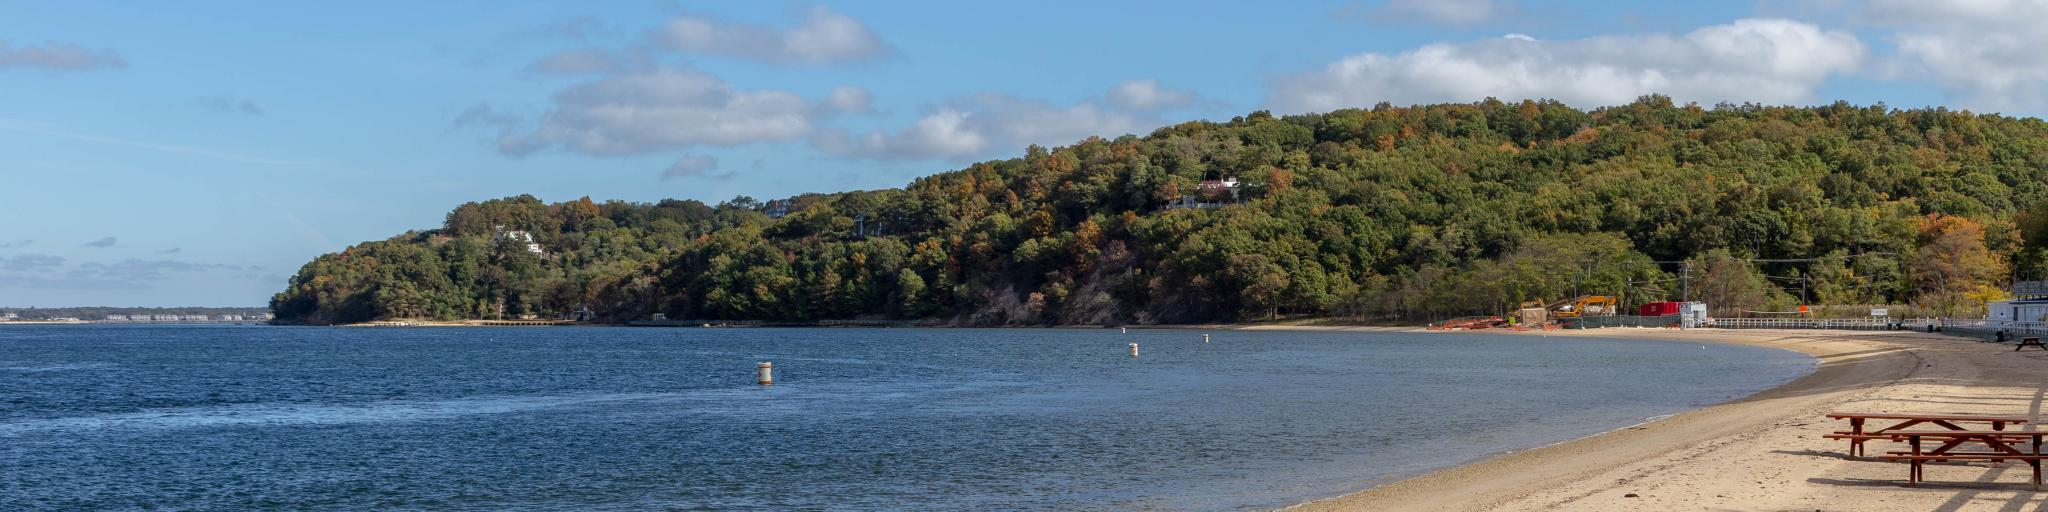 A shoreline in Shelter Island during a bright sunny day.